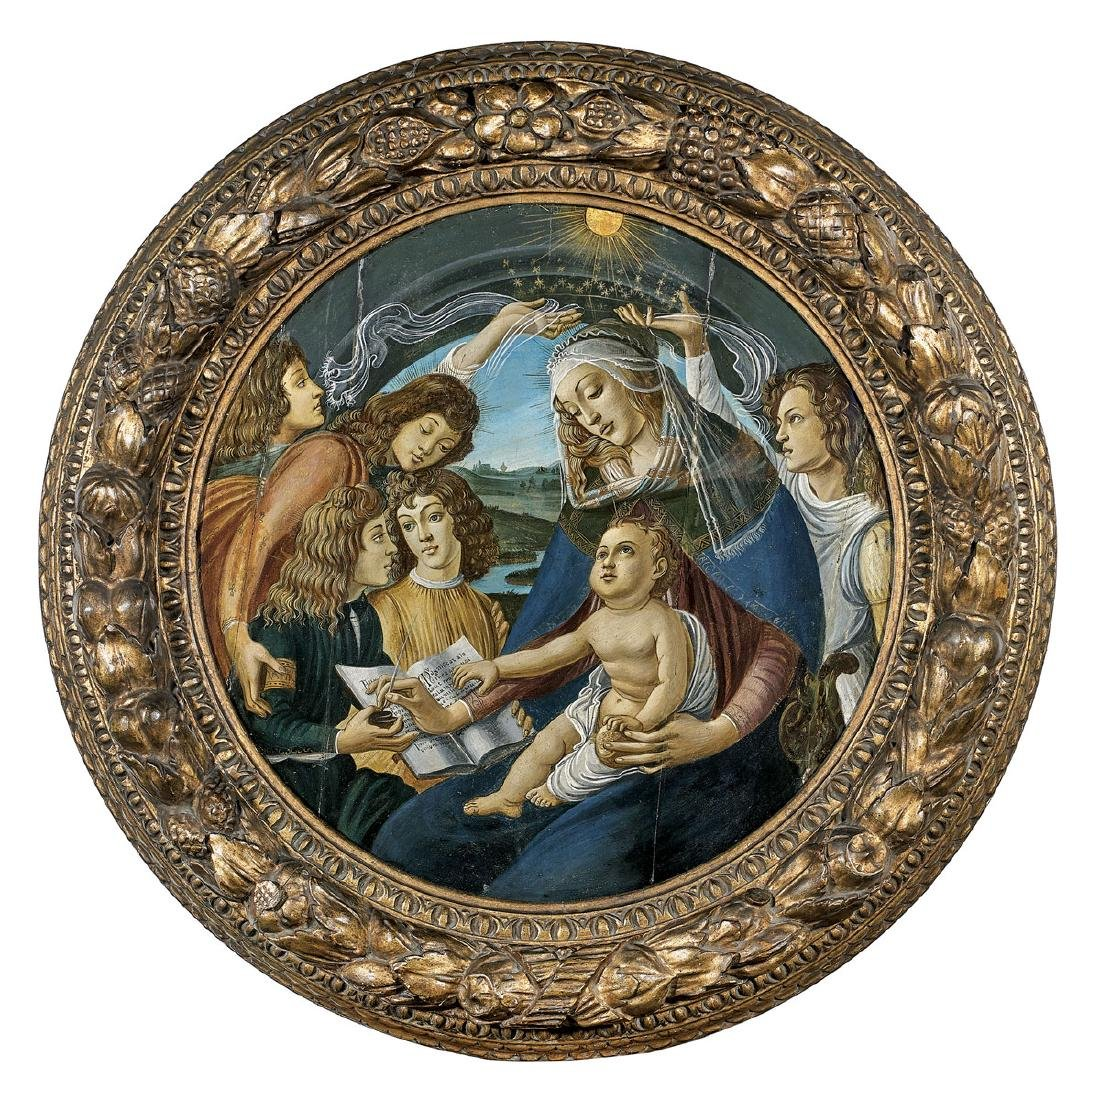 16TH CENTURY TONDO PAINTING AFTER BOTTICELLI